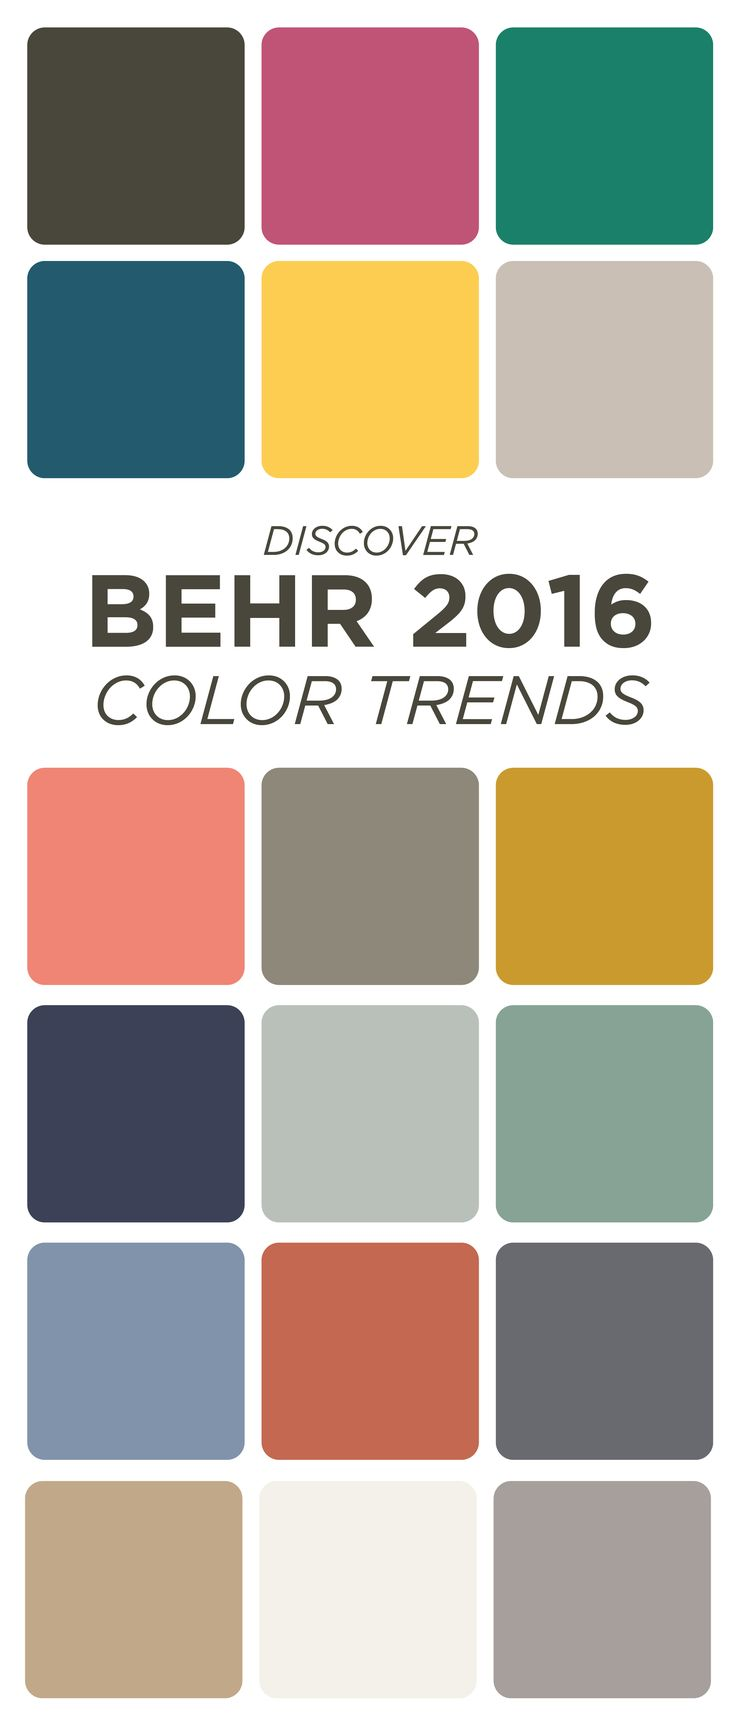 1000+ Images About Behr 2016 Color Trends On Pinterest. Small Round Kitchen Tables. Small L Shaped Kitchen Designs. Small Condo Kitchen Design. Mystery Island Kitchen. Kitchen Window Blinds Ideas. How To Spray Kitchen Cabinets White. Turn Old Dresser Into Kitchen Island. Kitchen Island Calgary